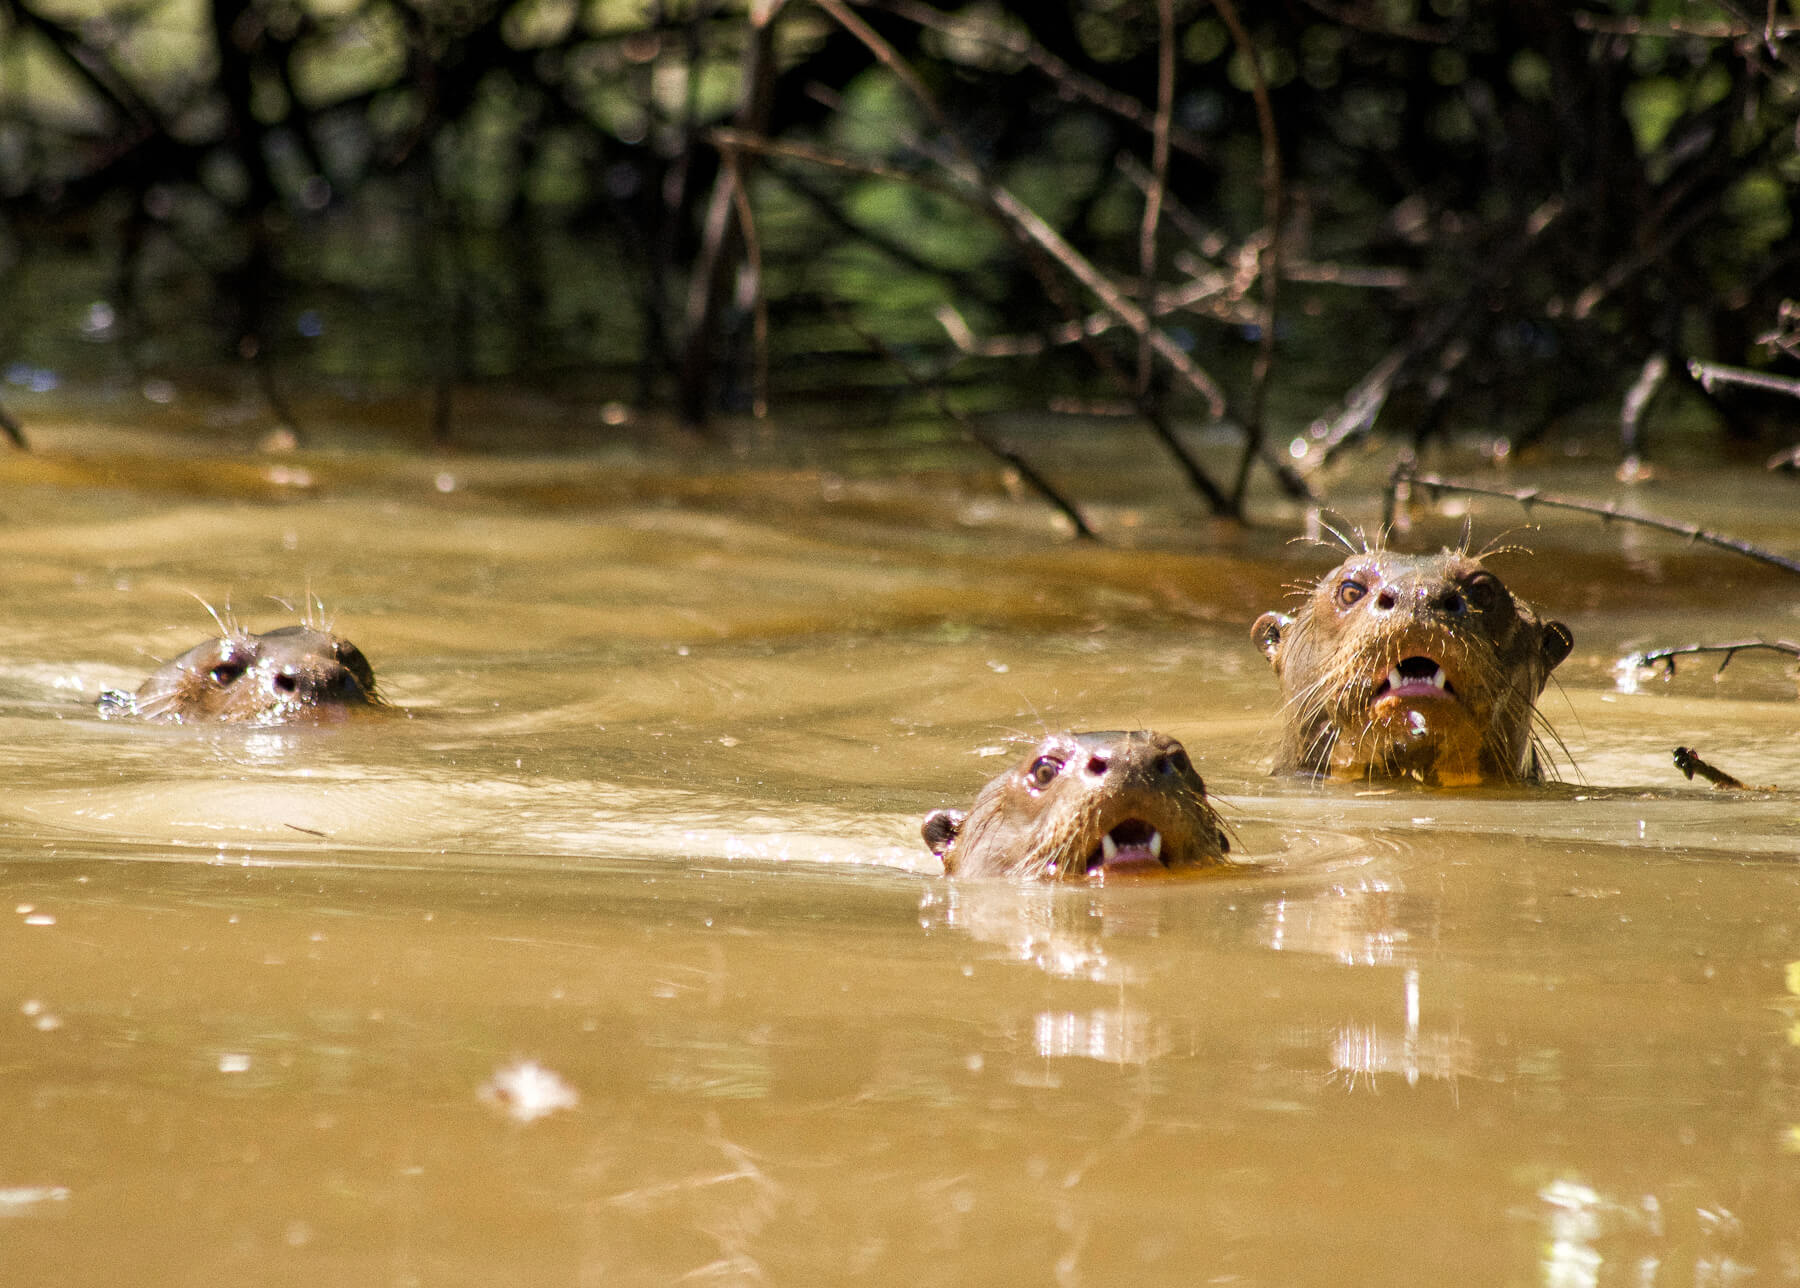 3 Giant River Otters poking their heads out of the murky water, bearing their teeth